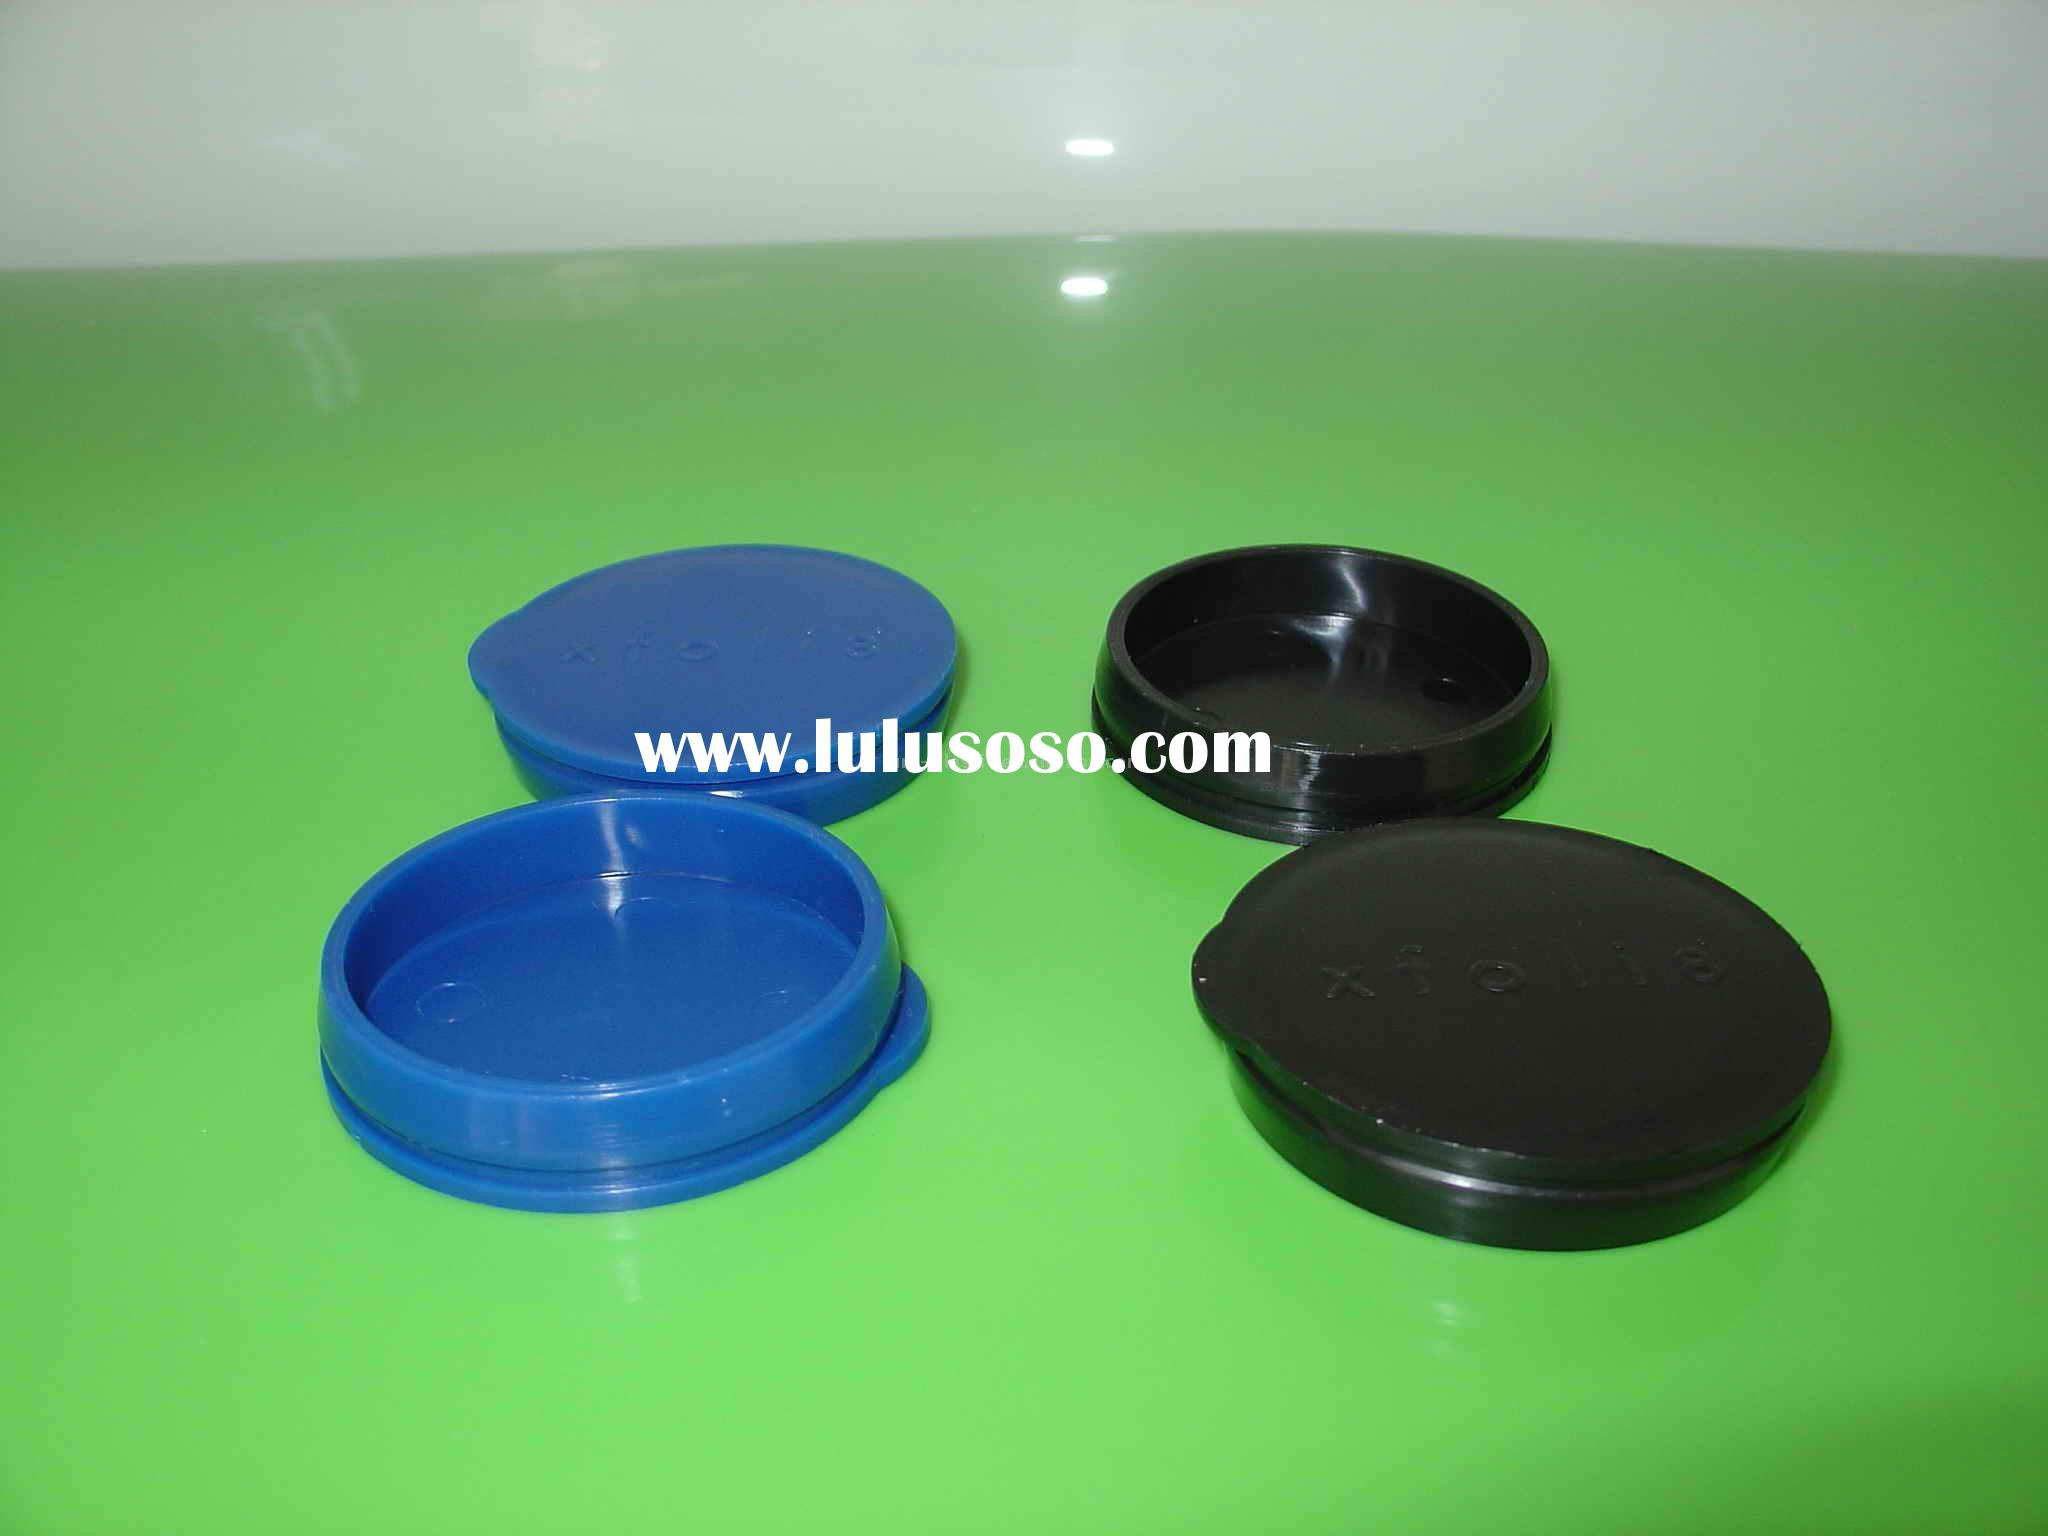 Plastic caps and plugs for packaging tubes sale